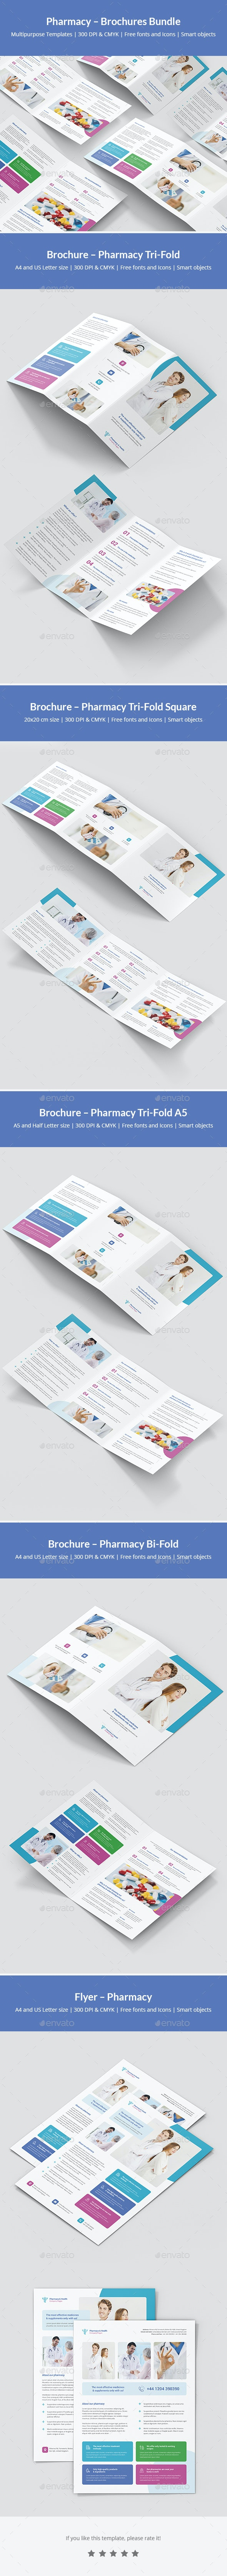 Pharmacy – Brochures Bundle Print Templates 5 in 1 - Corporate Brochures